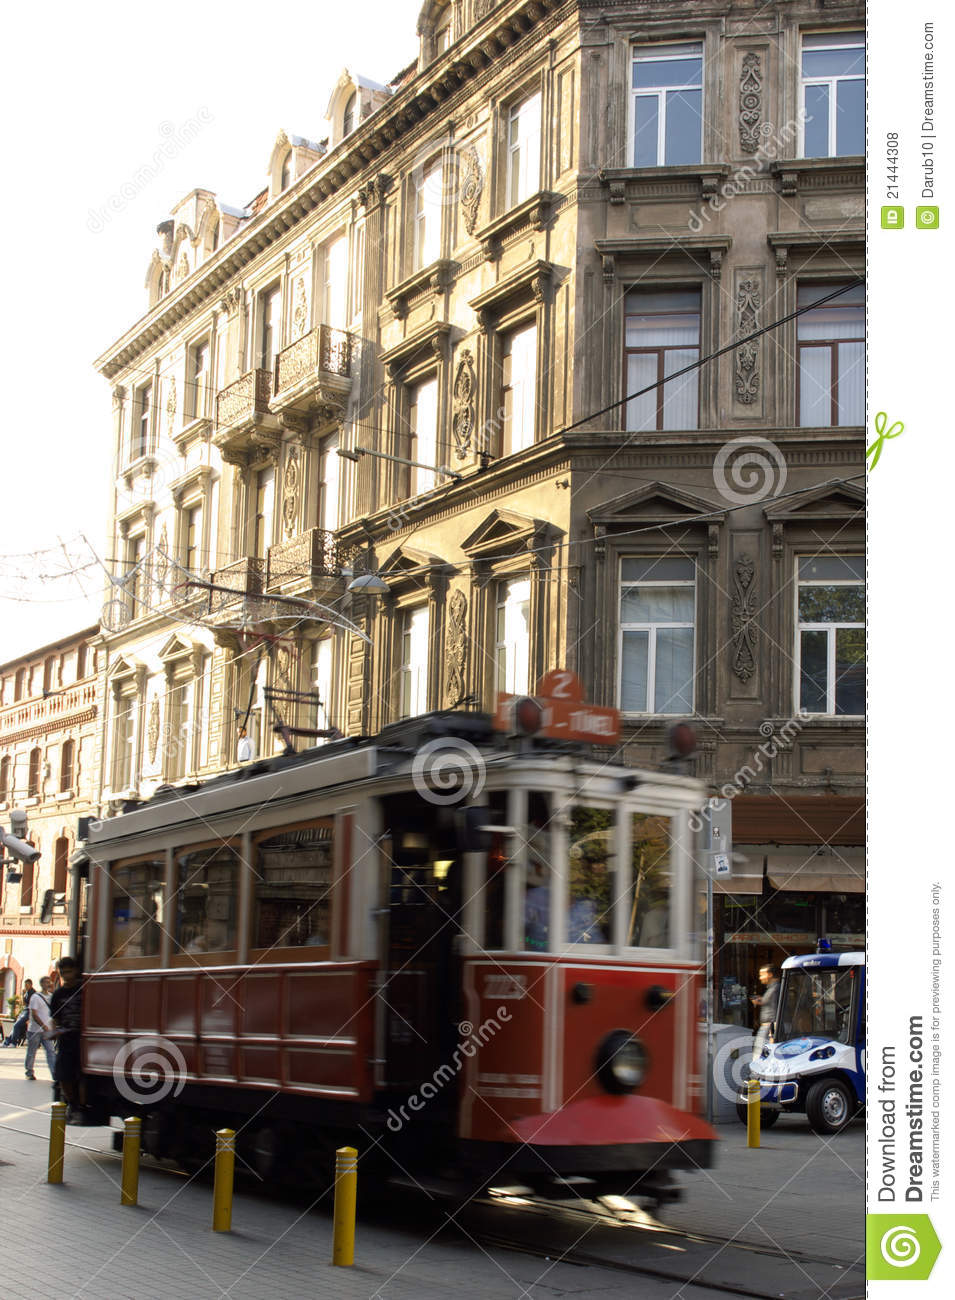 Beyoglu, Nostalgic Cable Car